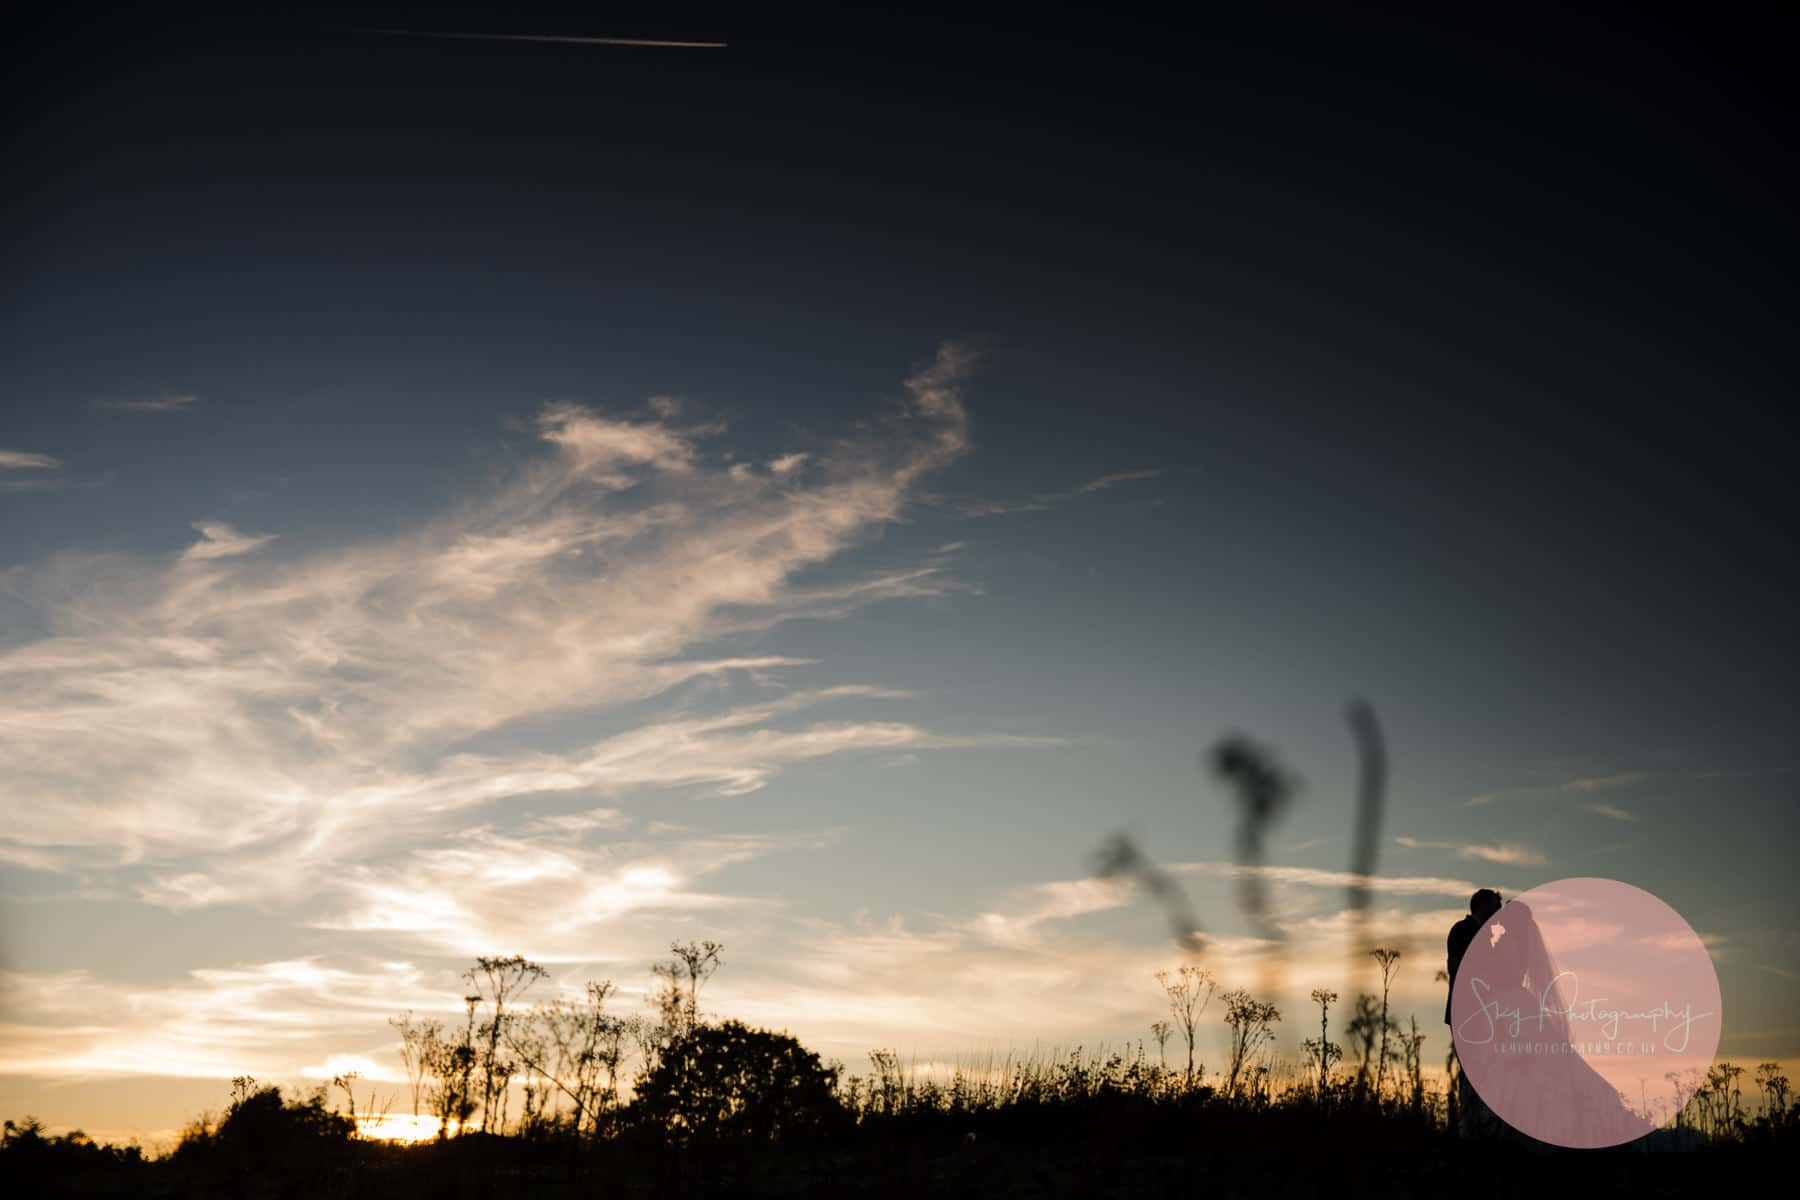 Photograph of a Sky Silhouette at dodmoor house